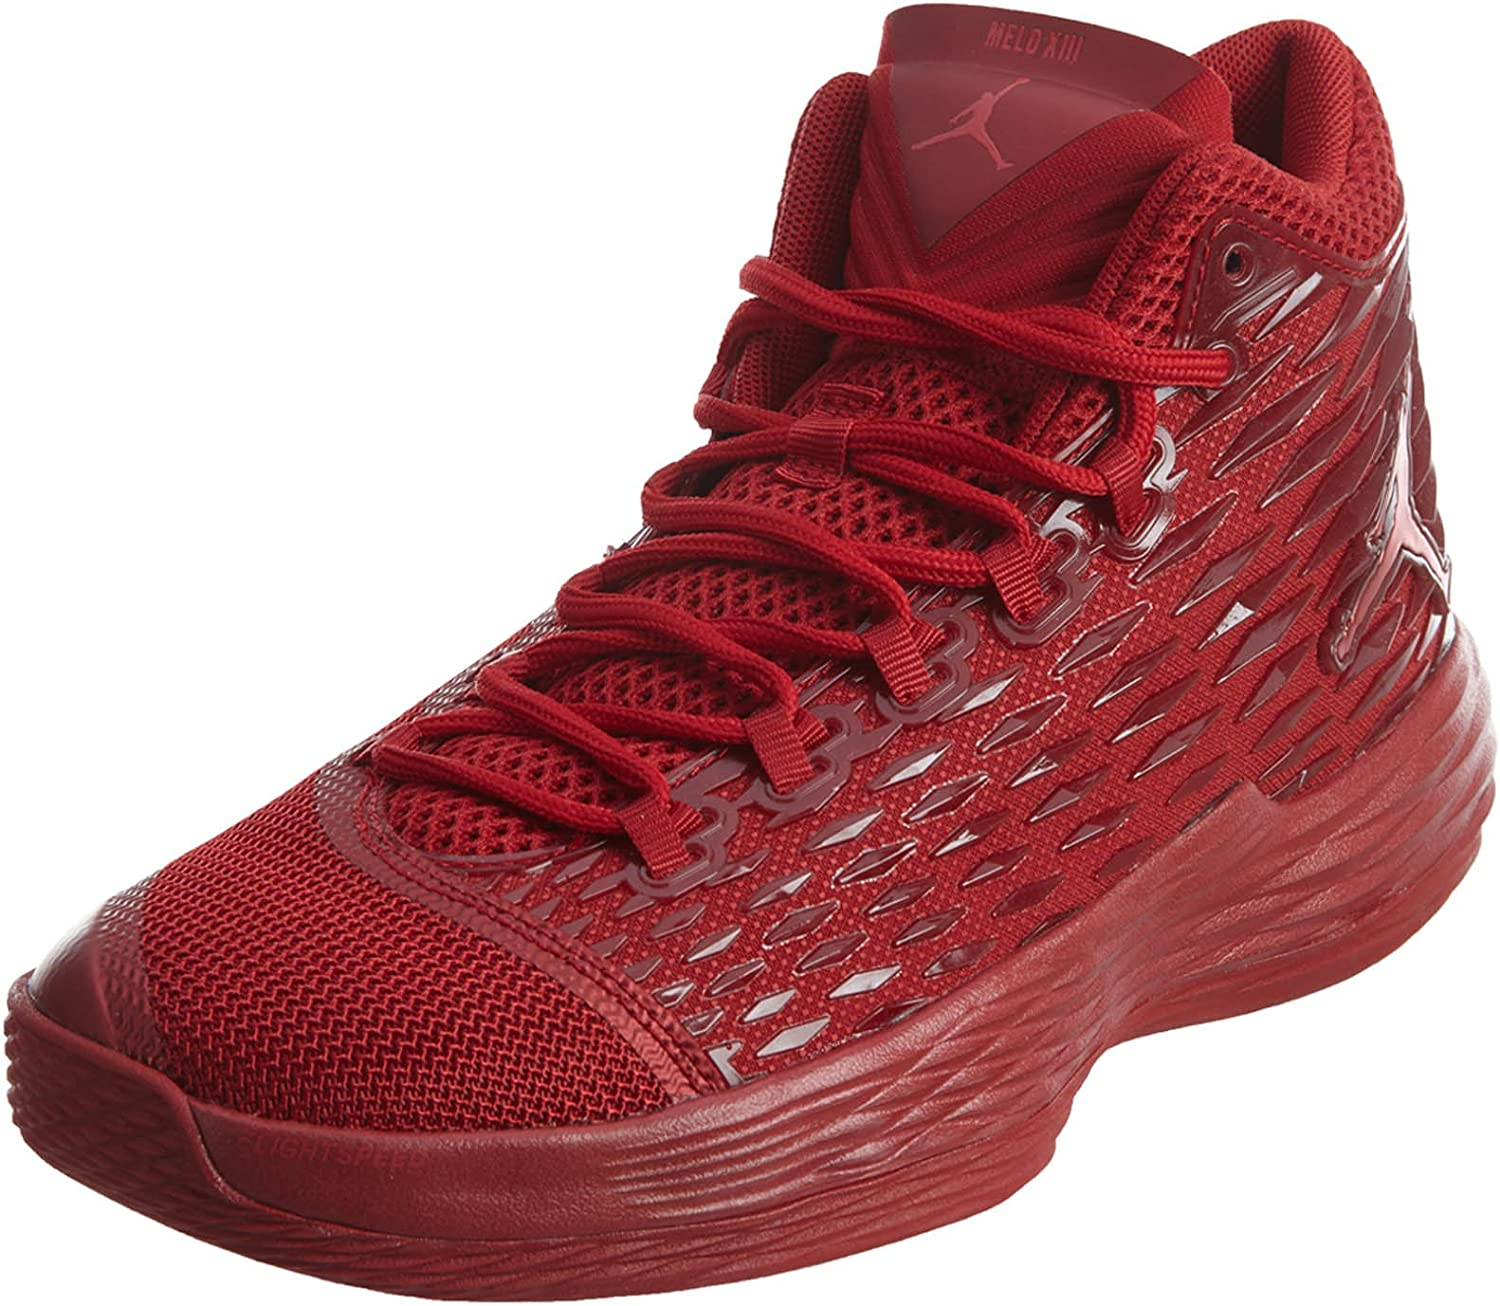 valle Stagione dimostrazione  Amazon.com | Jordan MELO M13 Mens Basketball-Shoes 881562-618_10 - Gym  RED/Gym RED-Black | Basketball